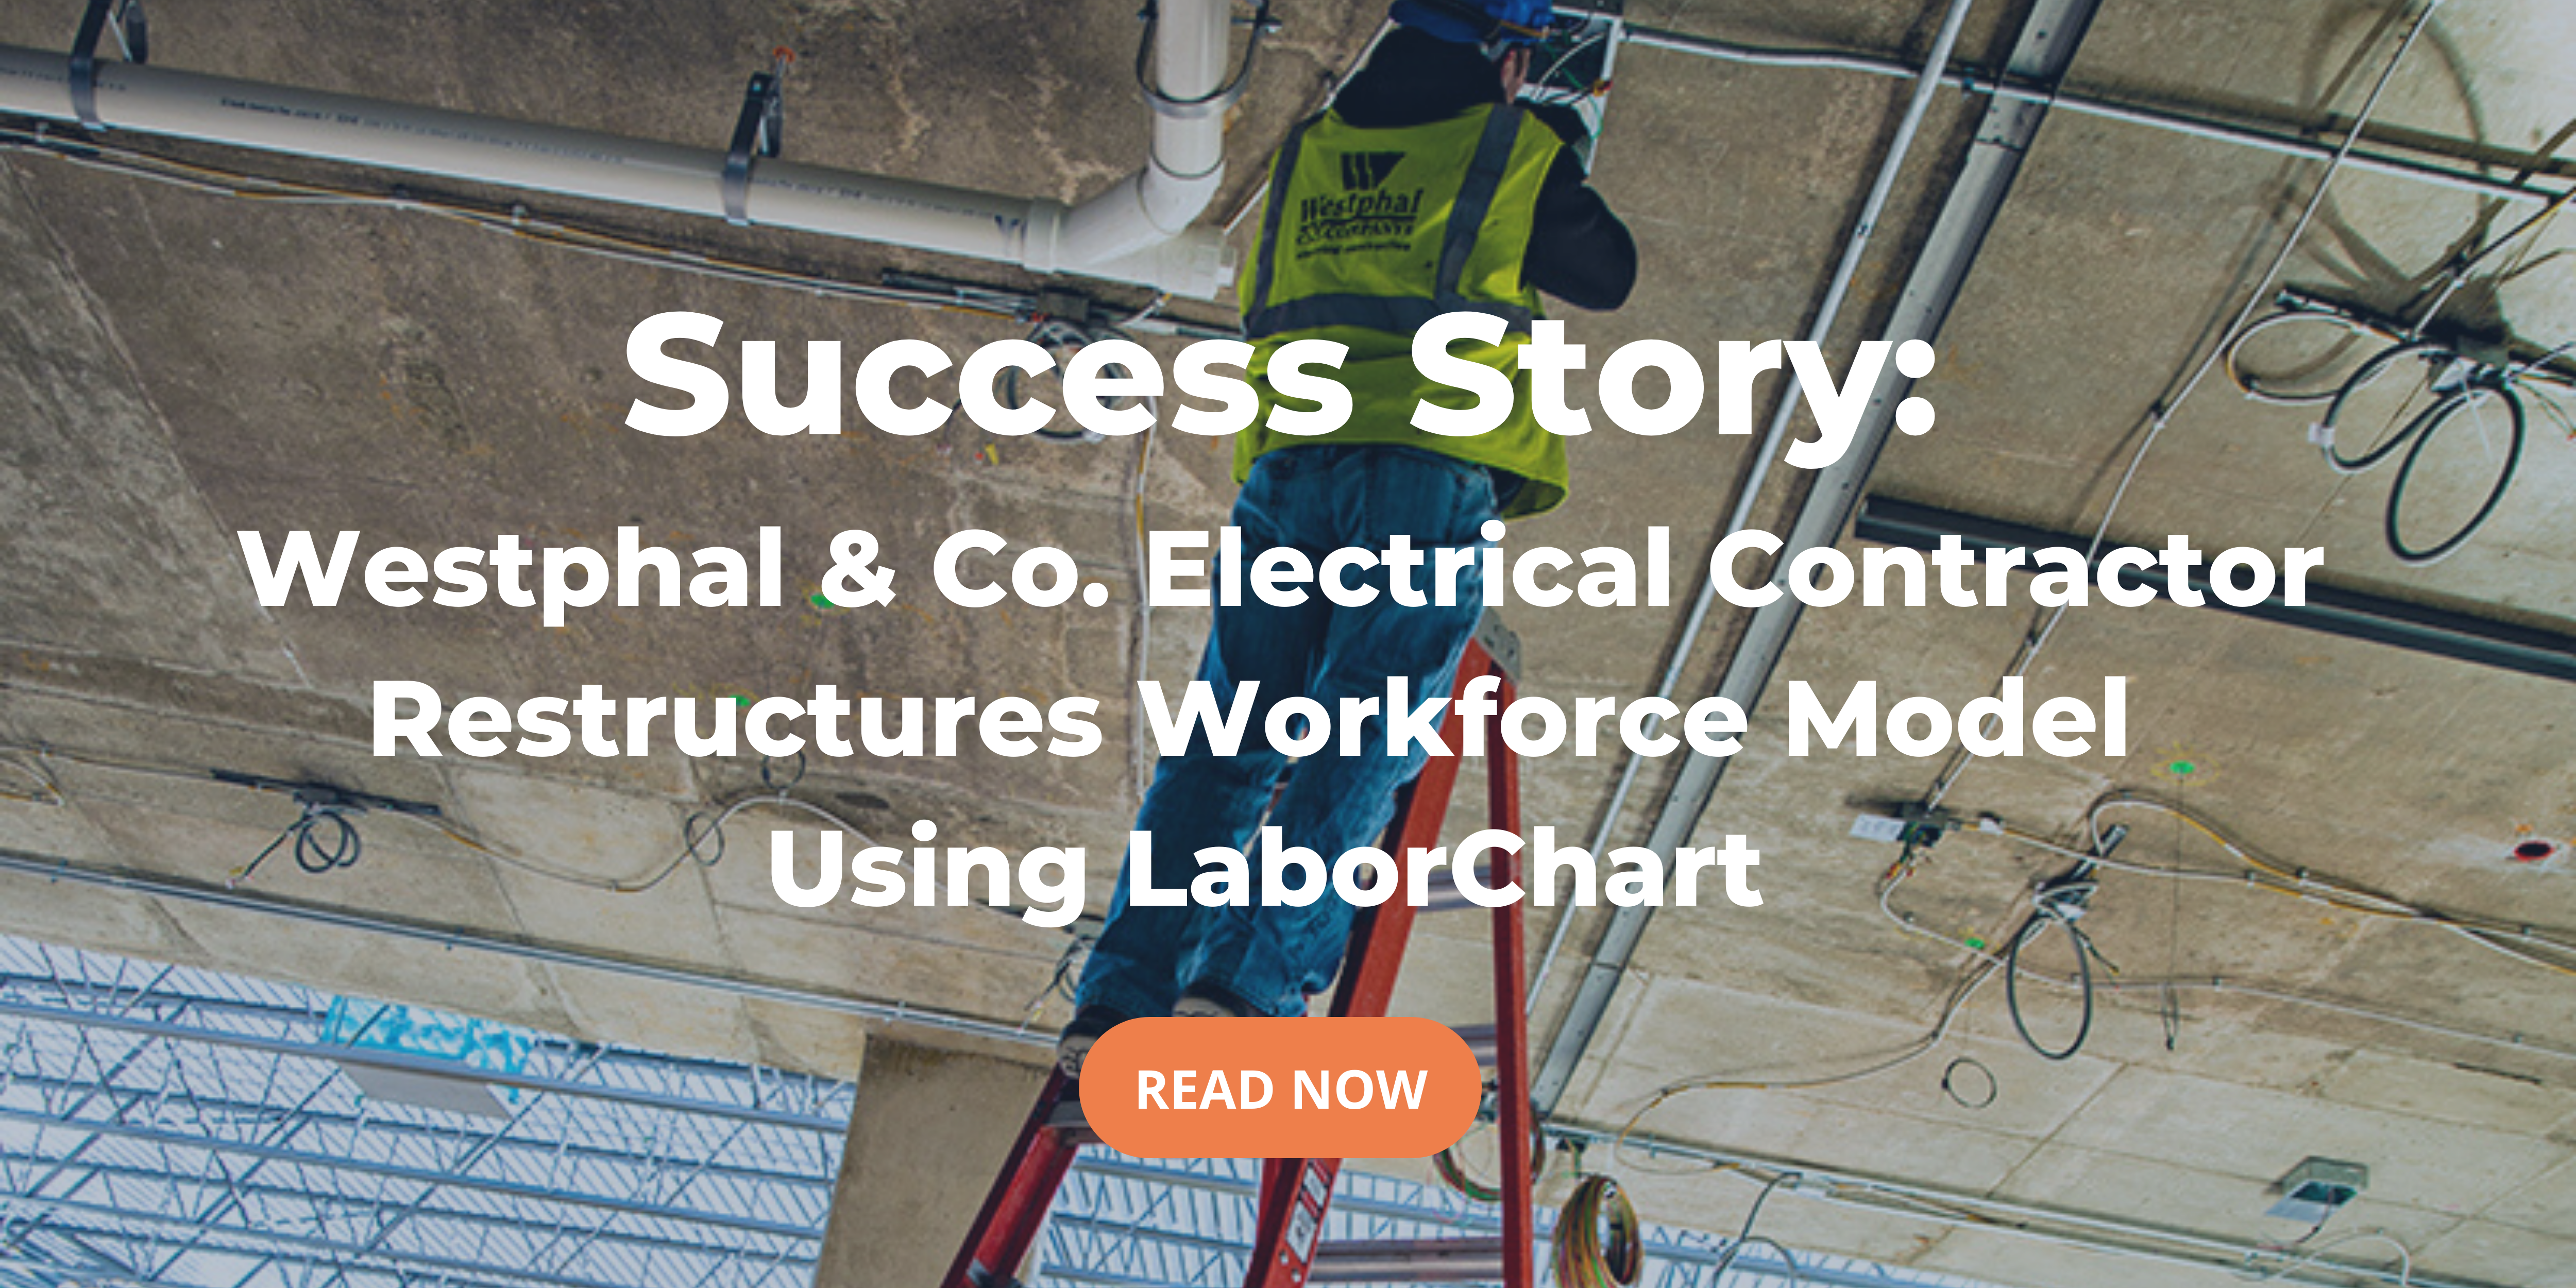 Click to read a success story about Westphal & Co.'s experience with LaborChart.